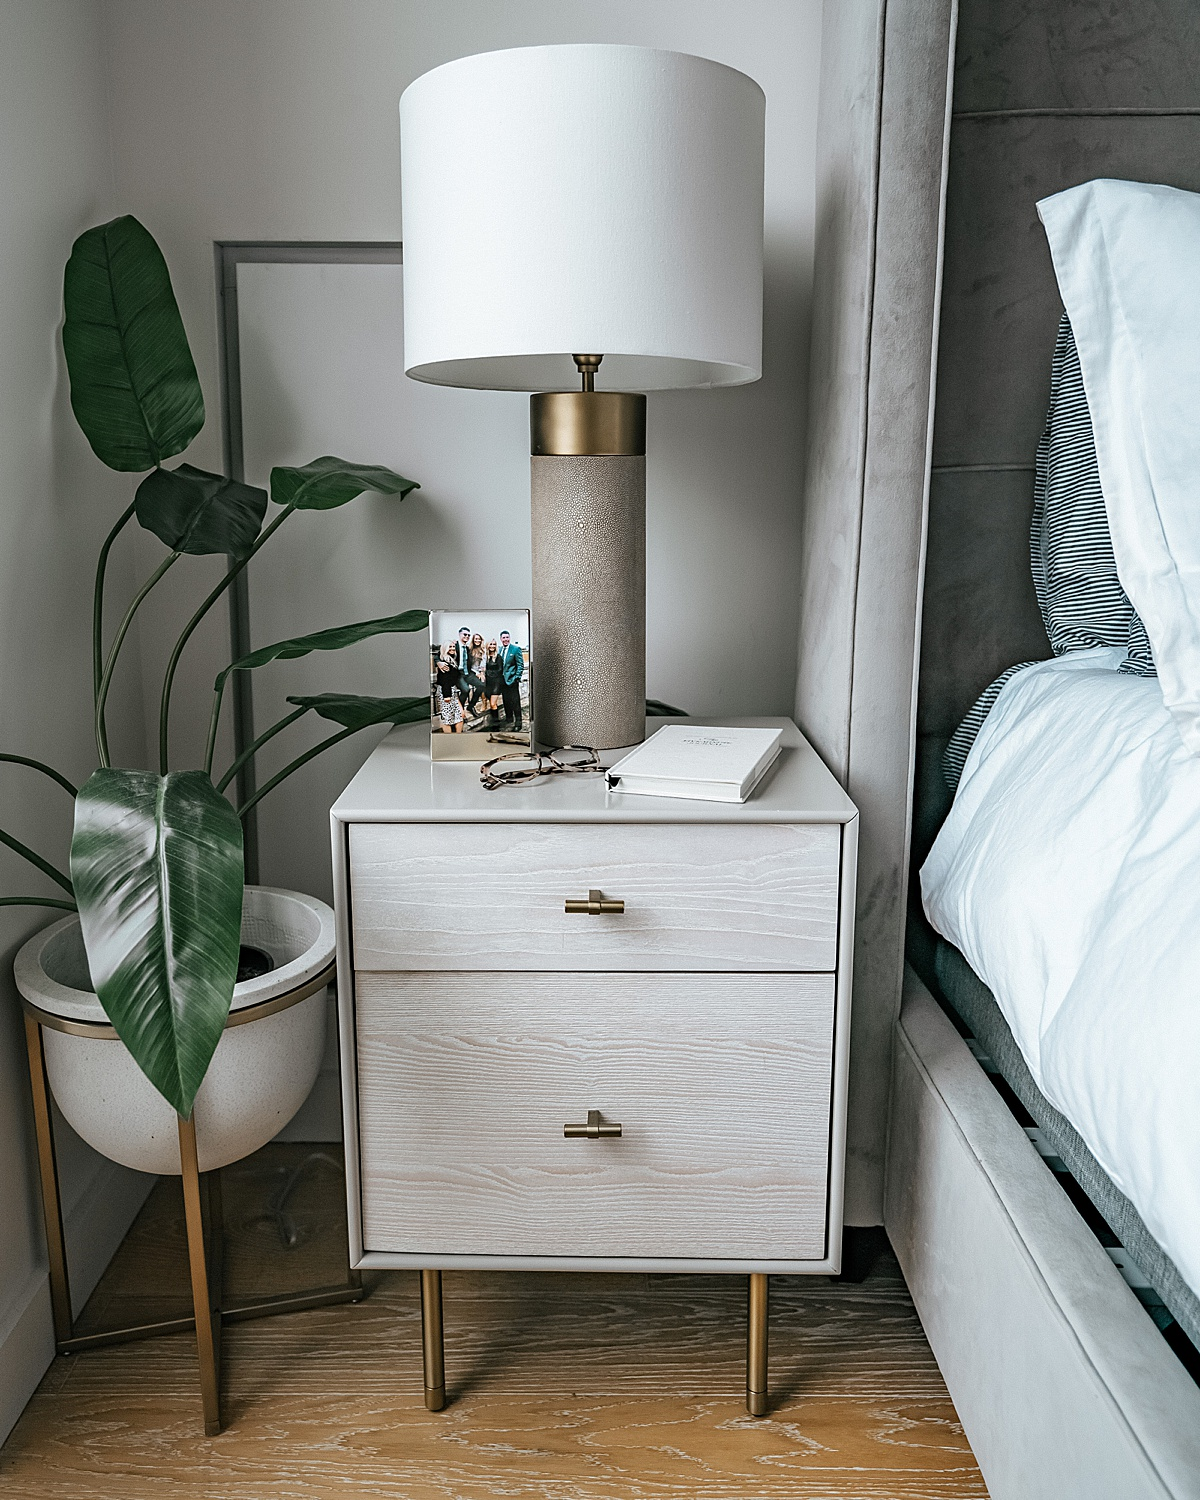 west elm night stand, shagreen lamp, bedroom plant, fake plant, shagreen lamp, nyc apartment, home decor tips, affordable home decor, olivia rink bedroom, olivia rink apartment, olivia rink bedroom, affordable decorating, new york life, new york apartment, nyc living, west elm, kathy kuo home, home decor, bedroom decor, frame, bedside frame, gold frame